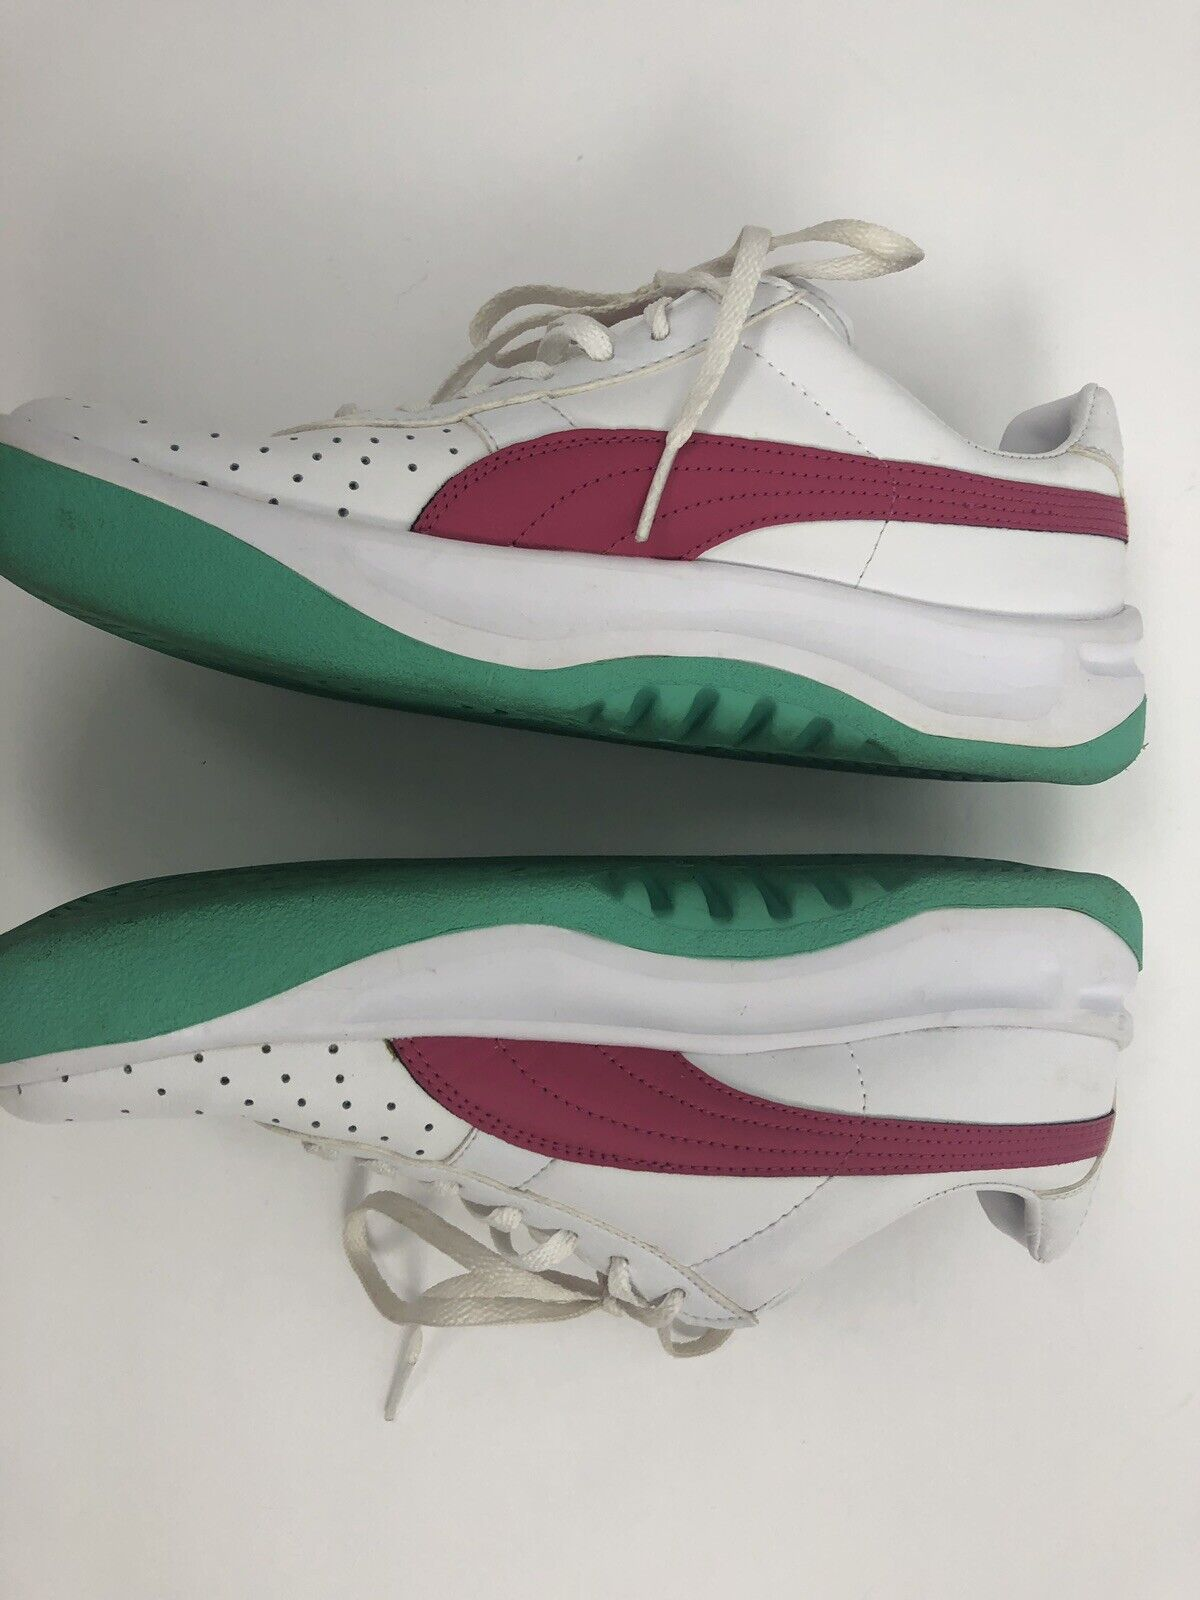 Puma GV Special Men's Shoes Size 6.5 Green Pink Women's FIt Size 8 Sneakers